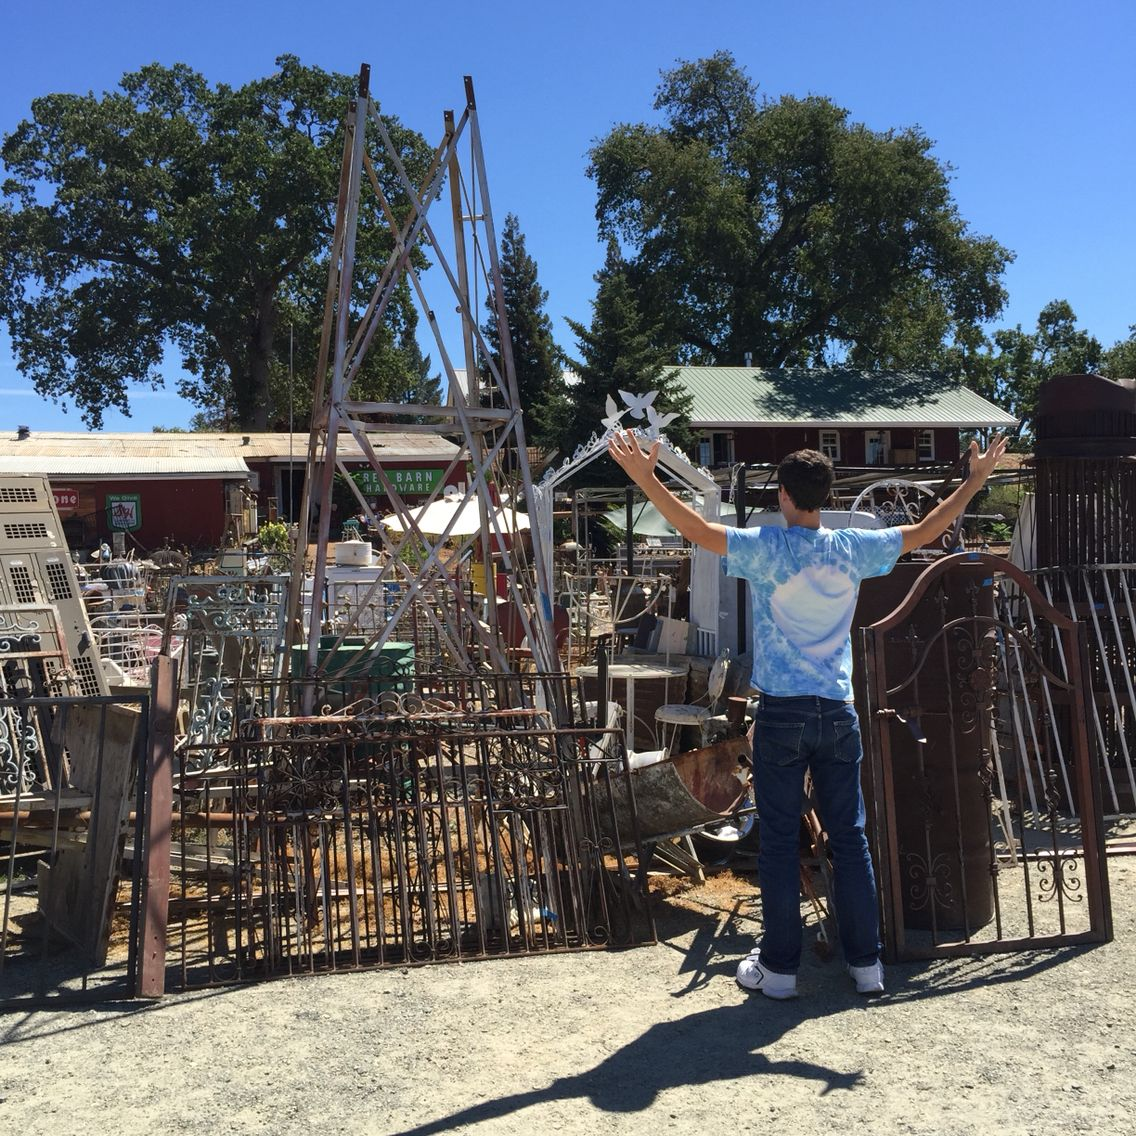 """""""The Pile!"""" I have named it...out door pile of rusty old things for sale in the darling little town of El Dorado, Ca"""